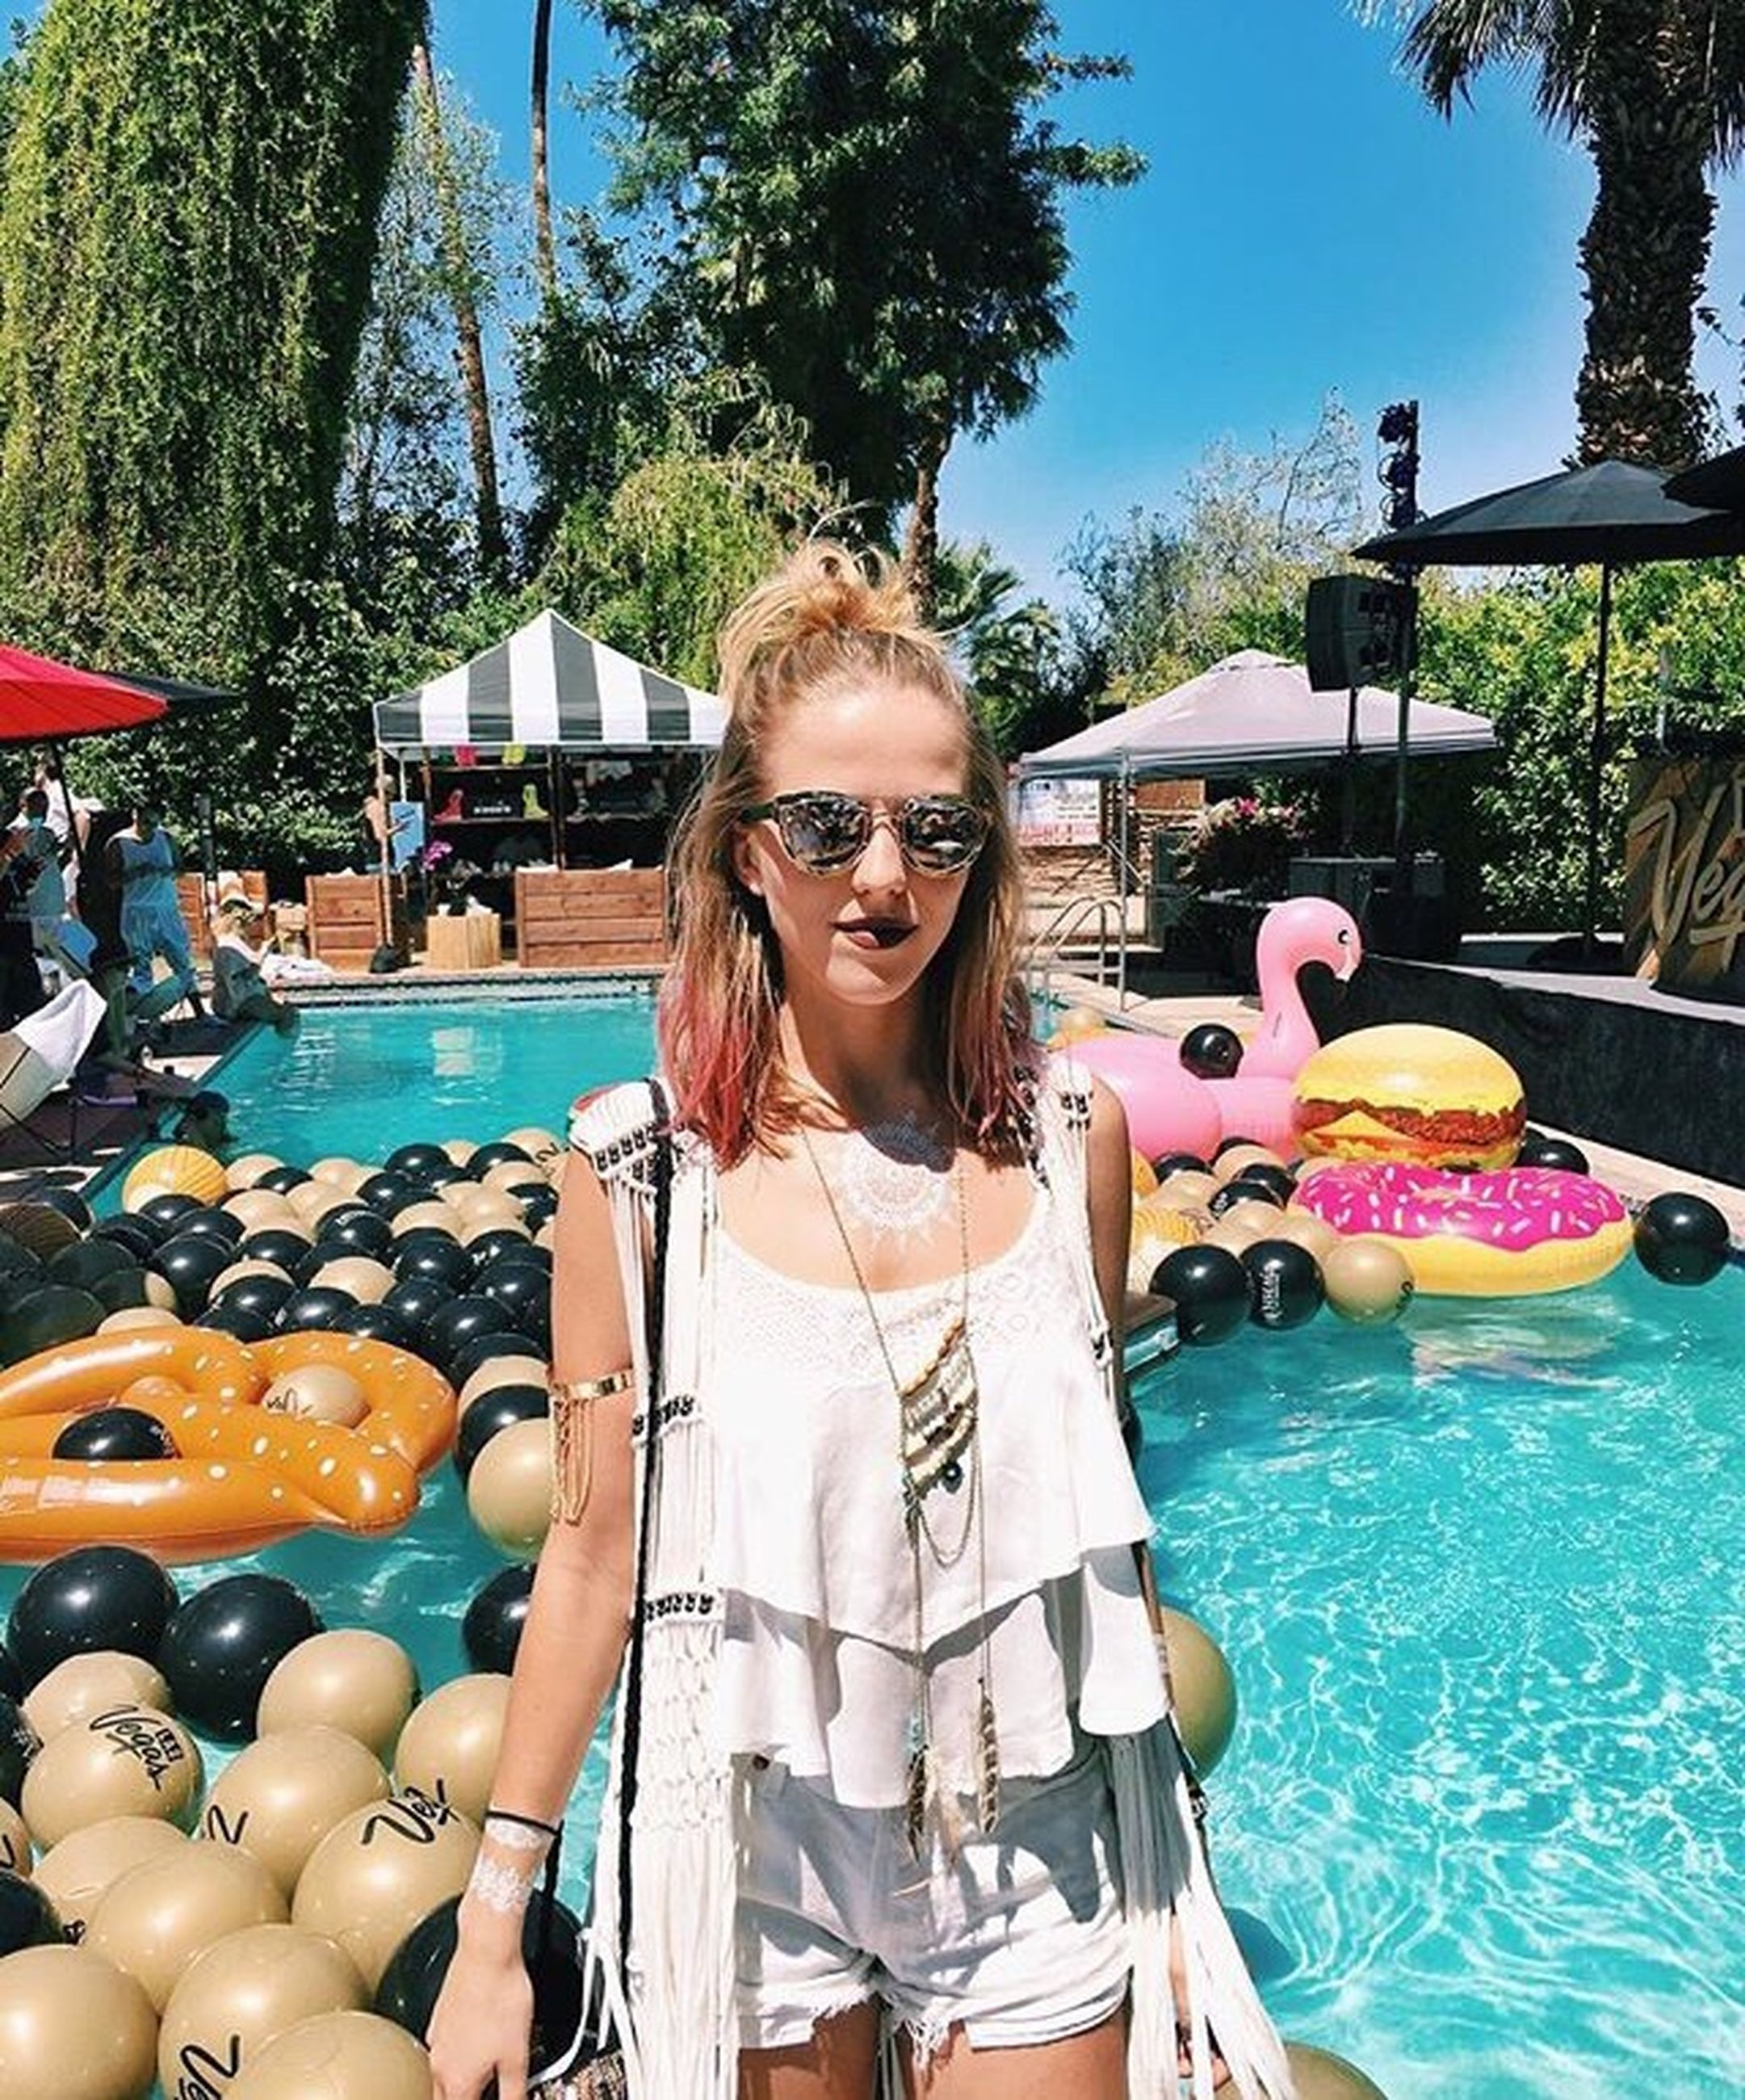 swimming pool, portrait, water, only women, long hair, summer, looking at camera, one woman only, sunlight, outdoors, day, adults only, blond hair, leisure activity, refreshment, relaxation, tree, sunglasses, happiness, young women, adult, one person, people, vacations, young adult, one young woman only